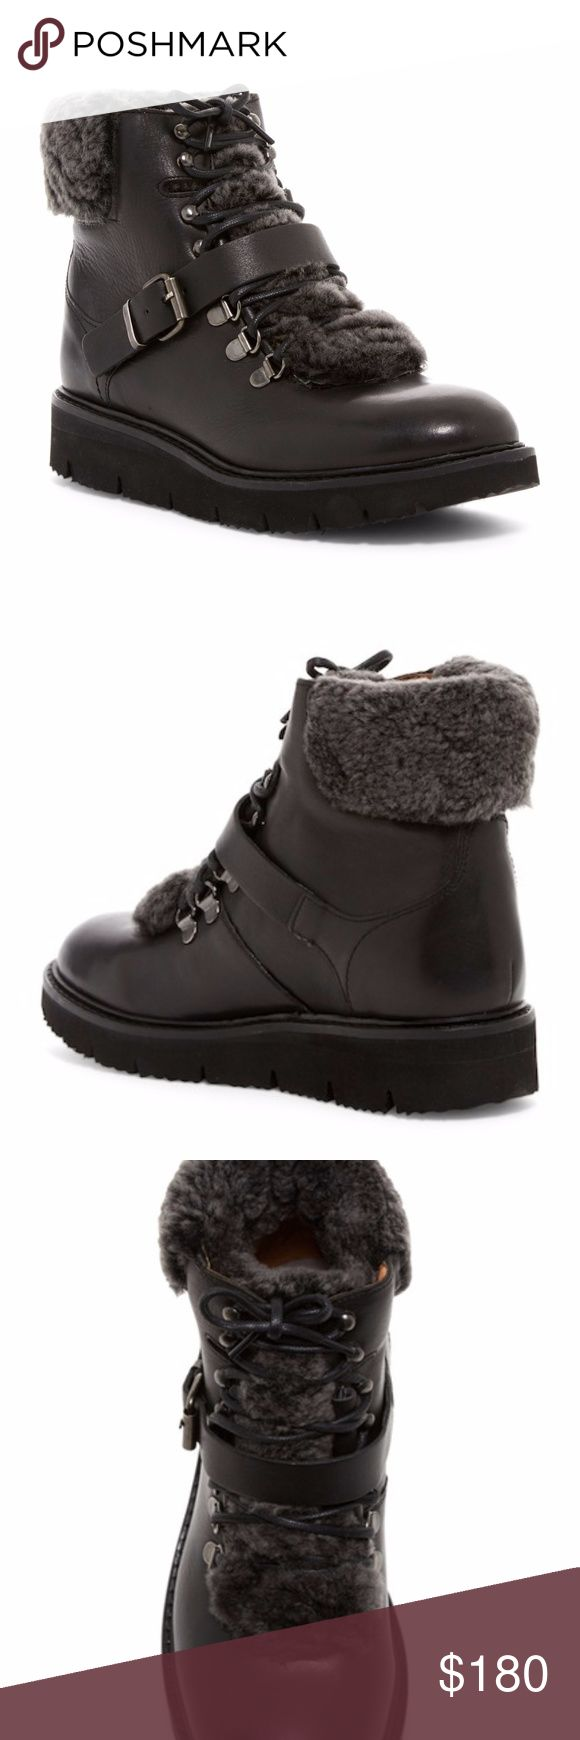 Hudson London Adda Shearling Trimmed Boot Sz 6/37 Hudson London Adda Genuine Shearling Trimmed Boot Sz 6/37, new no box H By Hudson Shoes Ankle Boots & Booties